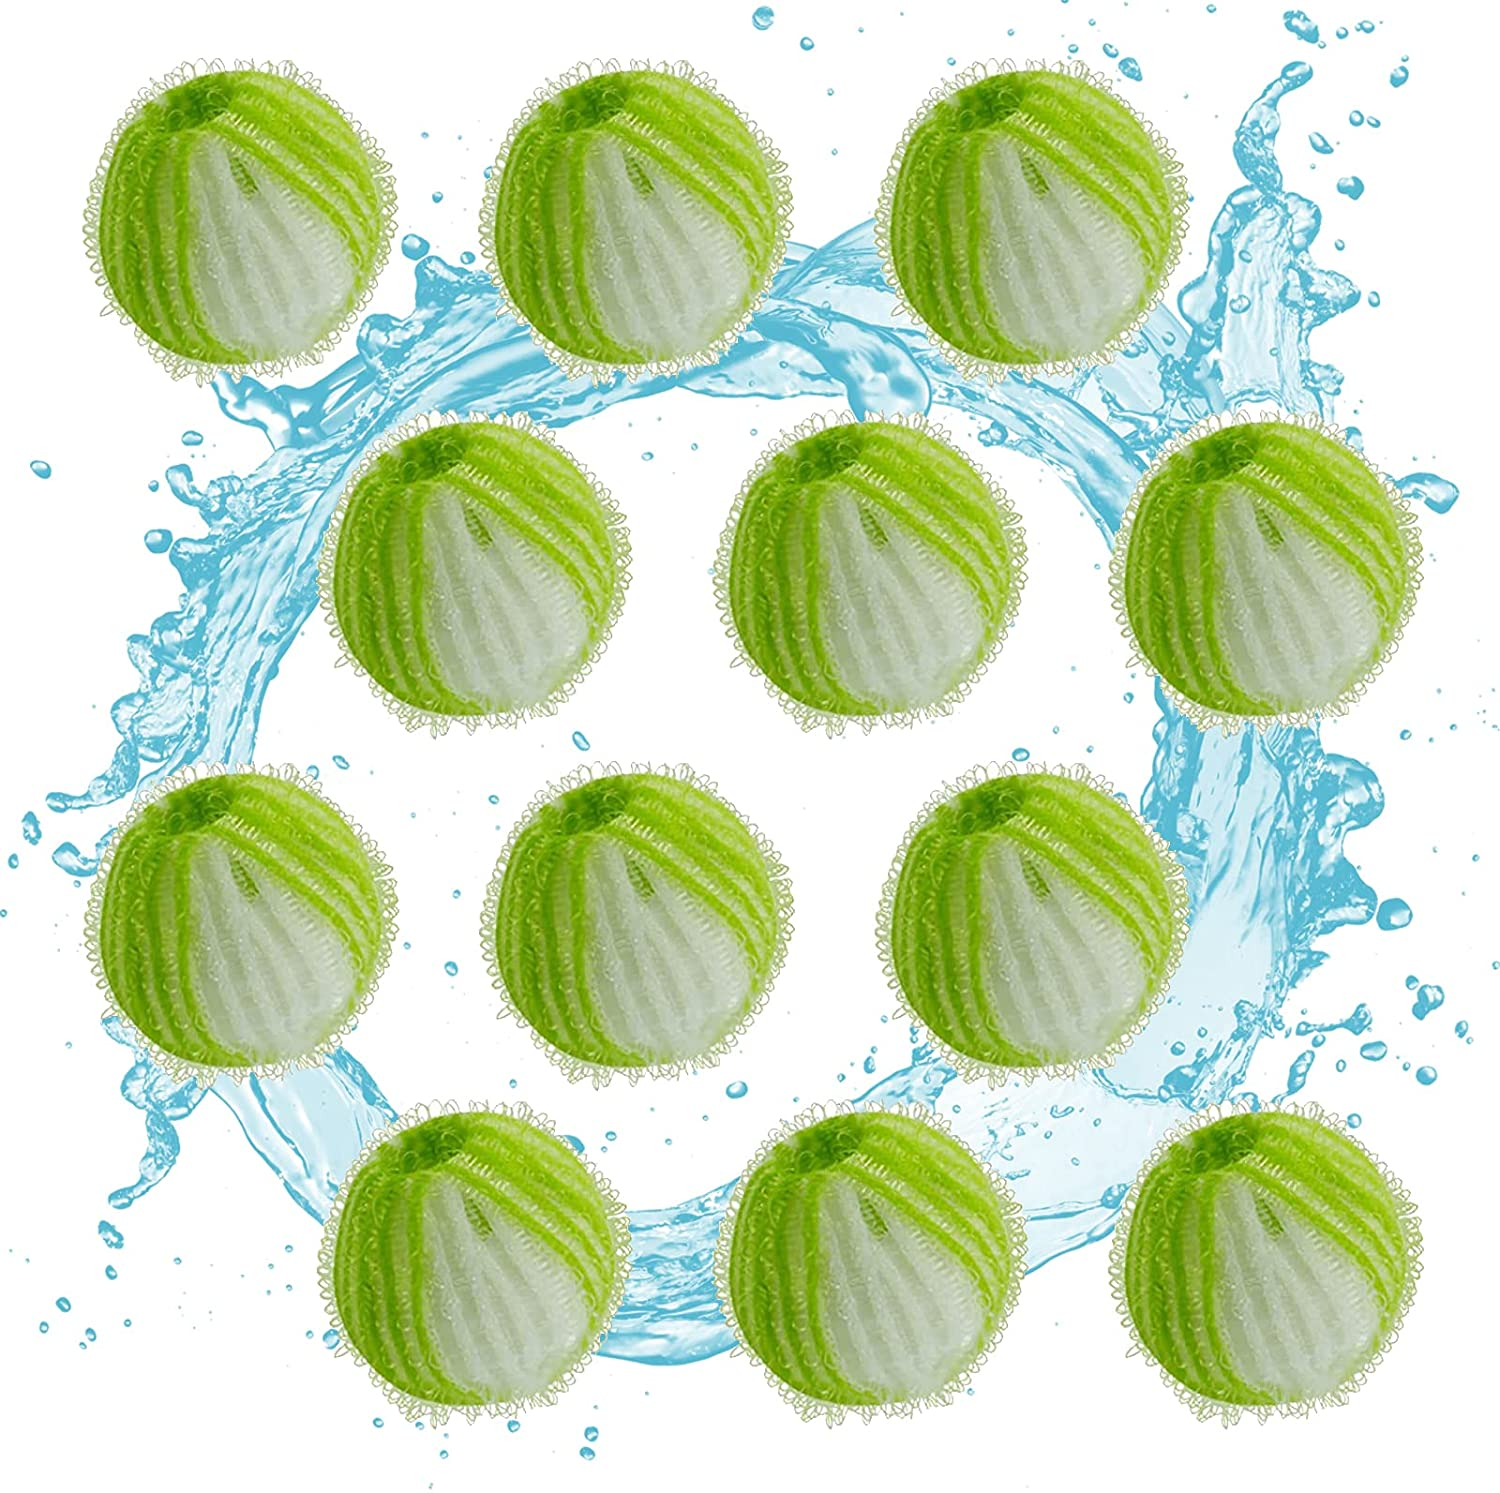 K-EYKONG Pet Hair Remover for Laundry, Pack of 12 Reusable Lint Remover, Washing Machine Hair Catcher, Washing Balls Dryer Balls for Clothing Dog Cat Pet Fur Remover…